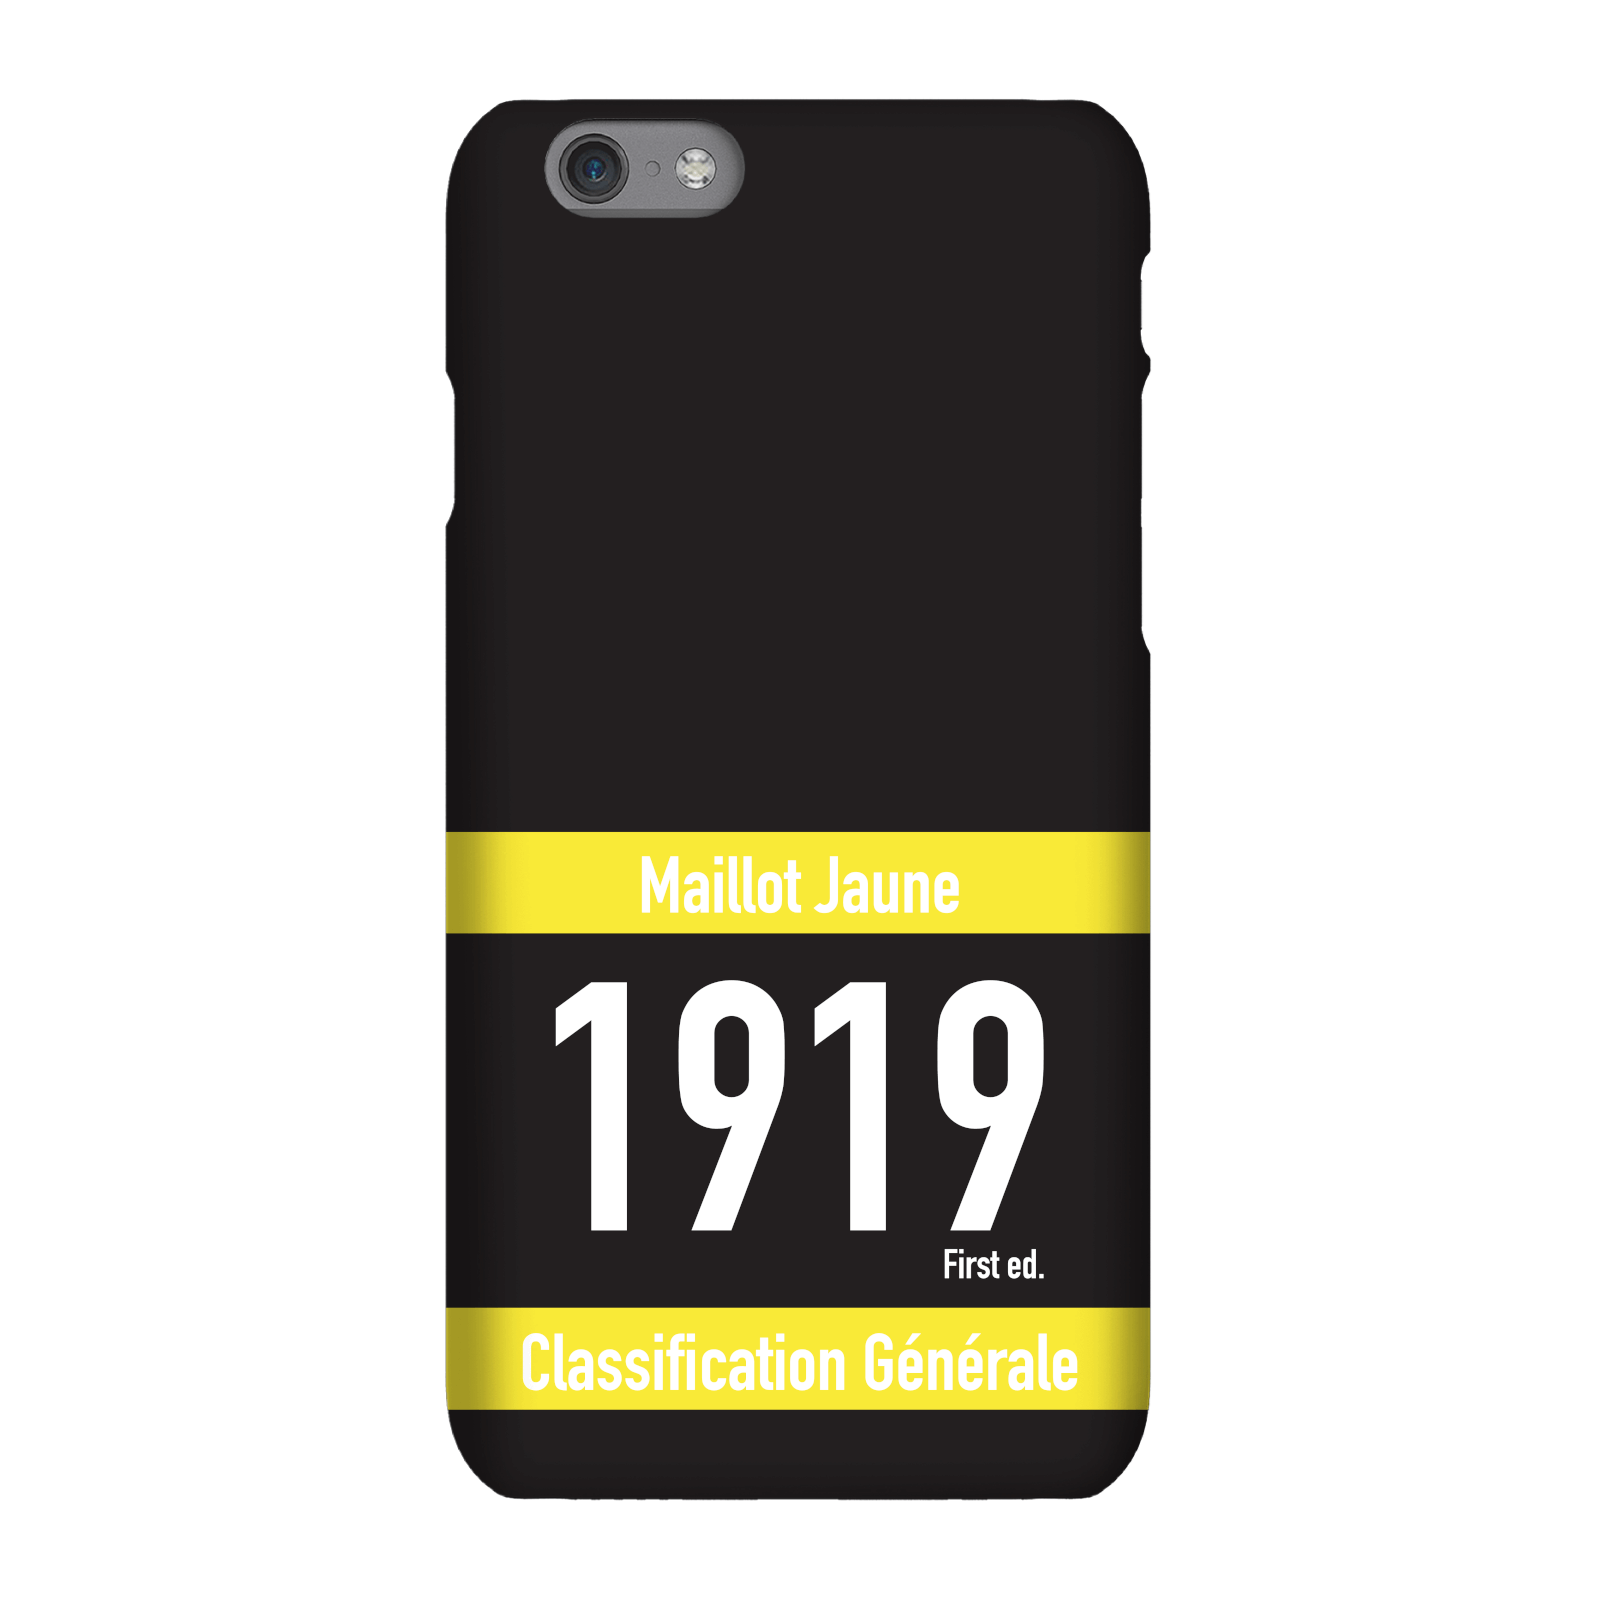 Maillot Jaune Phone Case for iPhone and Android - iPhone 6 Plus - Tough Case - Gloss